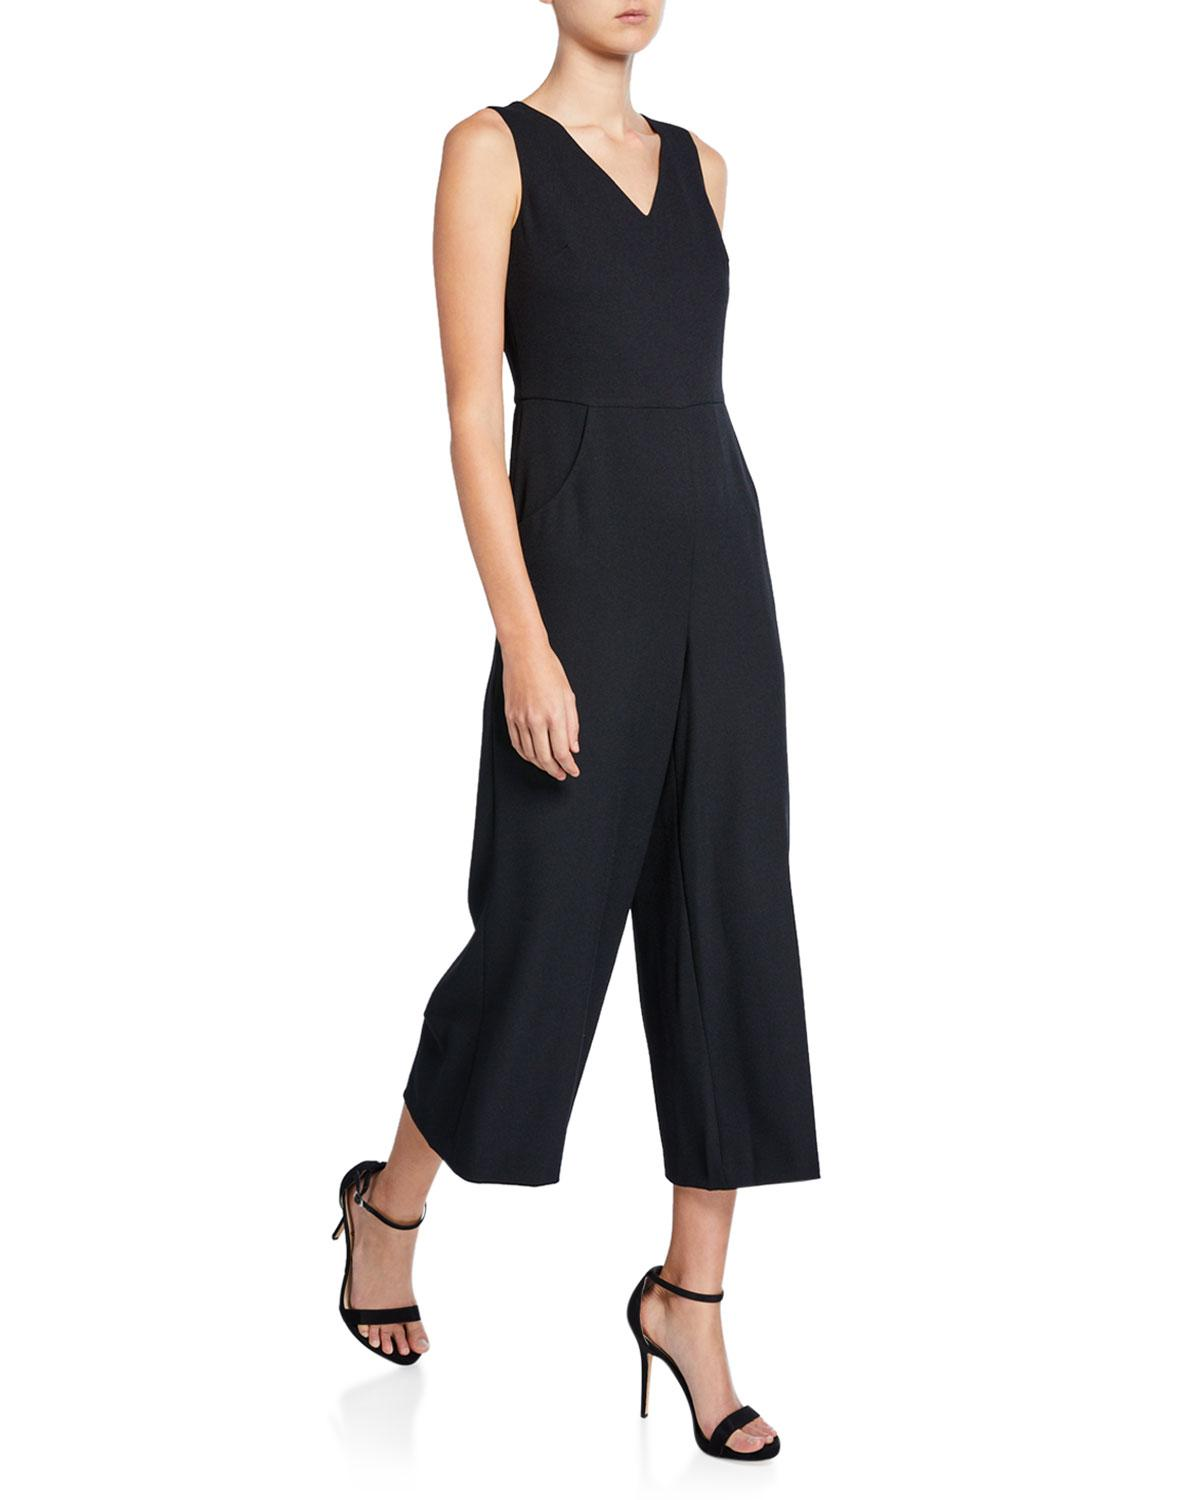 662b0fa4a60 Lyst - Karl Lagerfeld Crepe Cropped Wide-leg Jumpsuit in Black